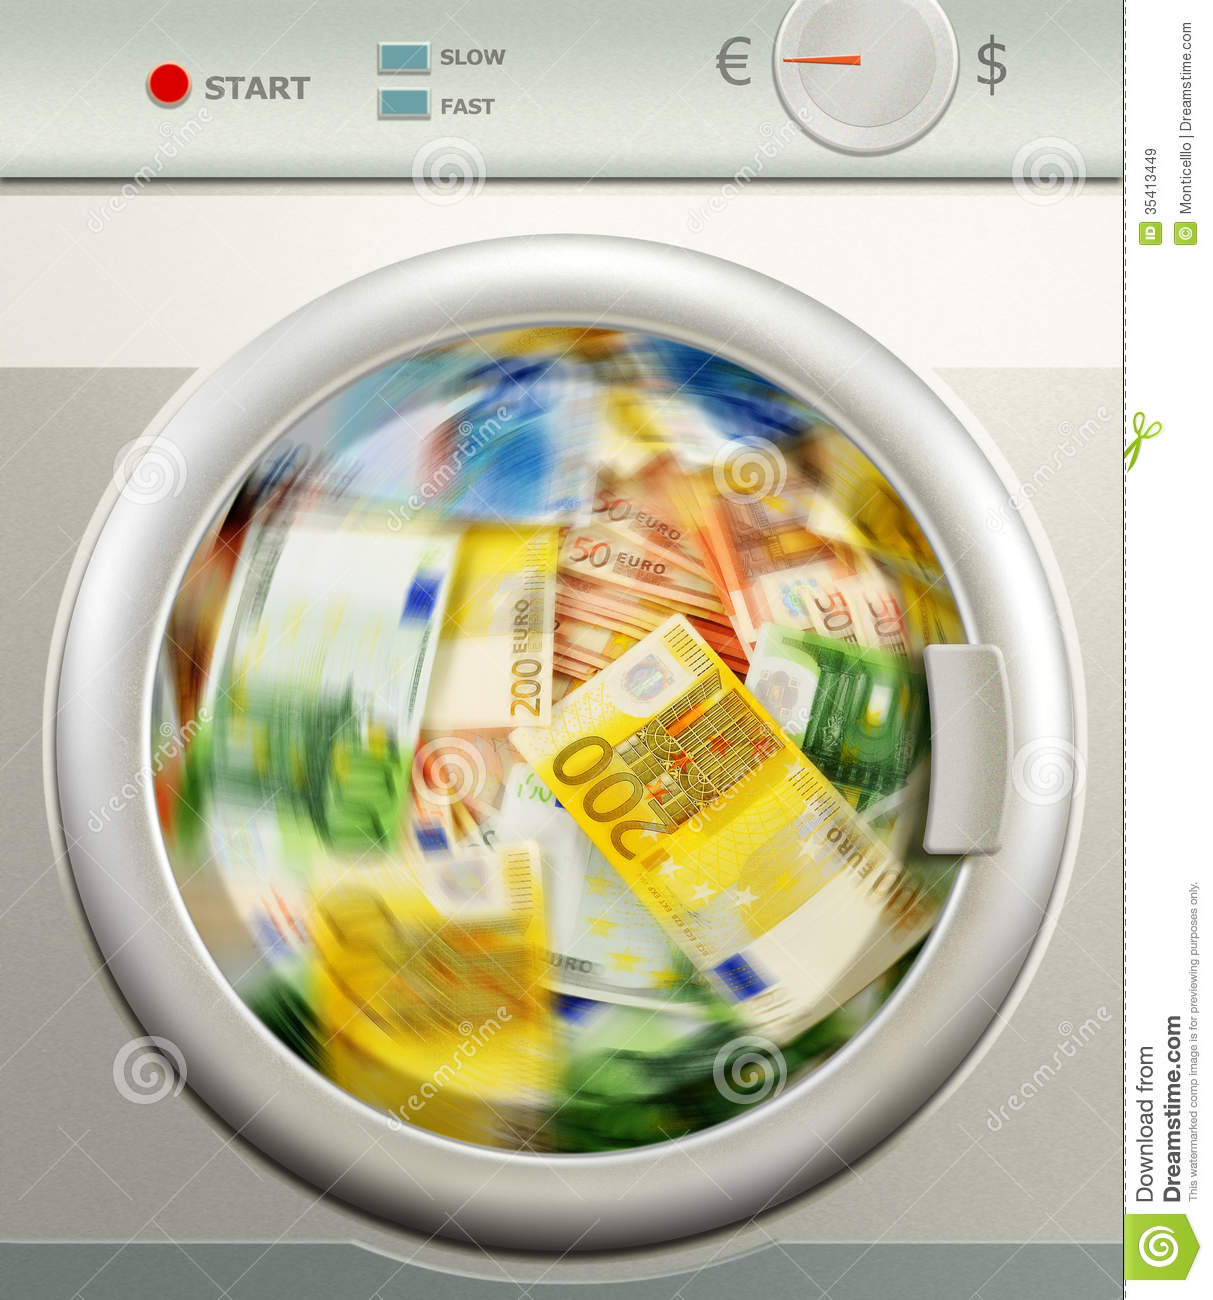 how to clean money laundering